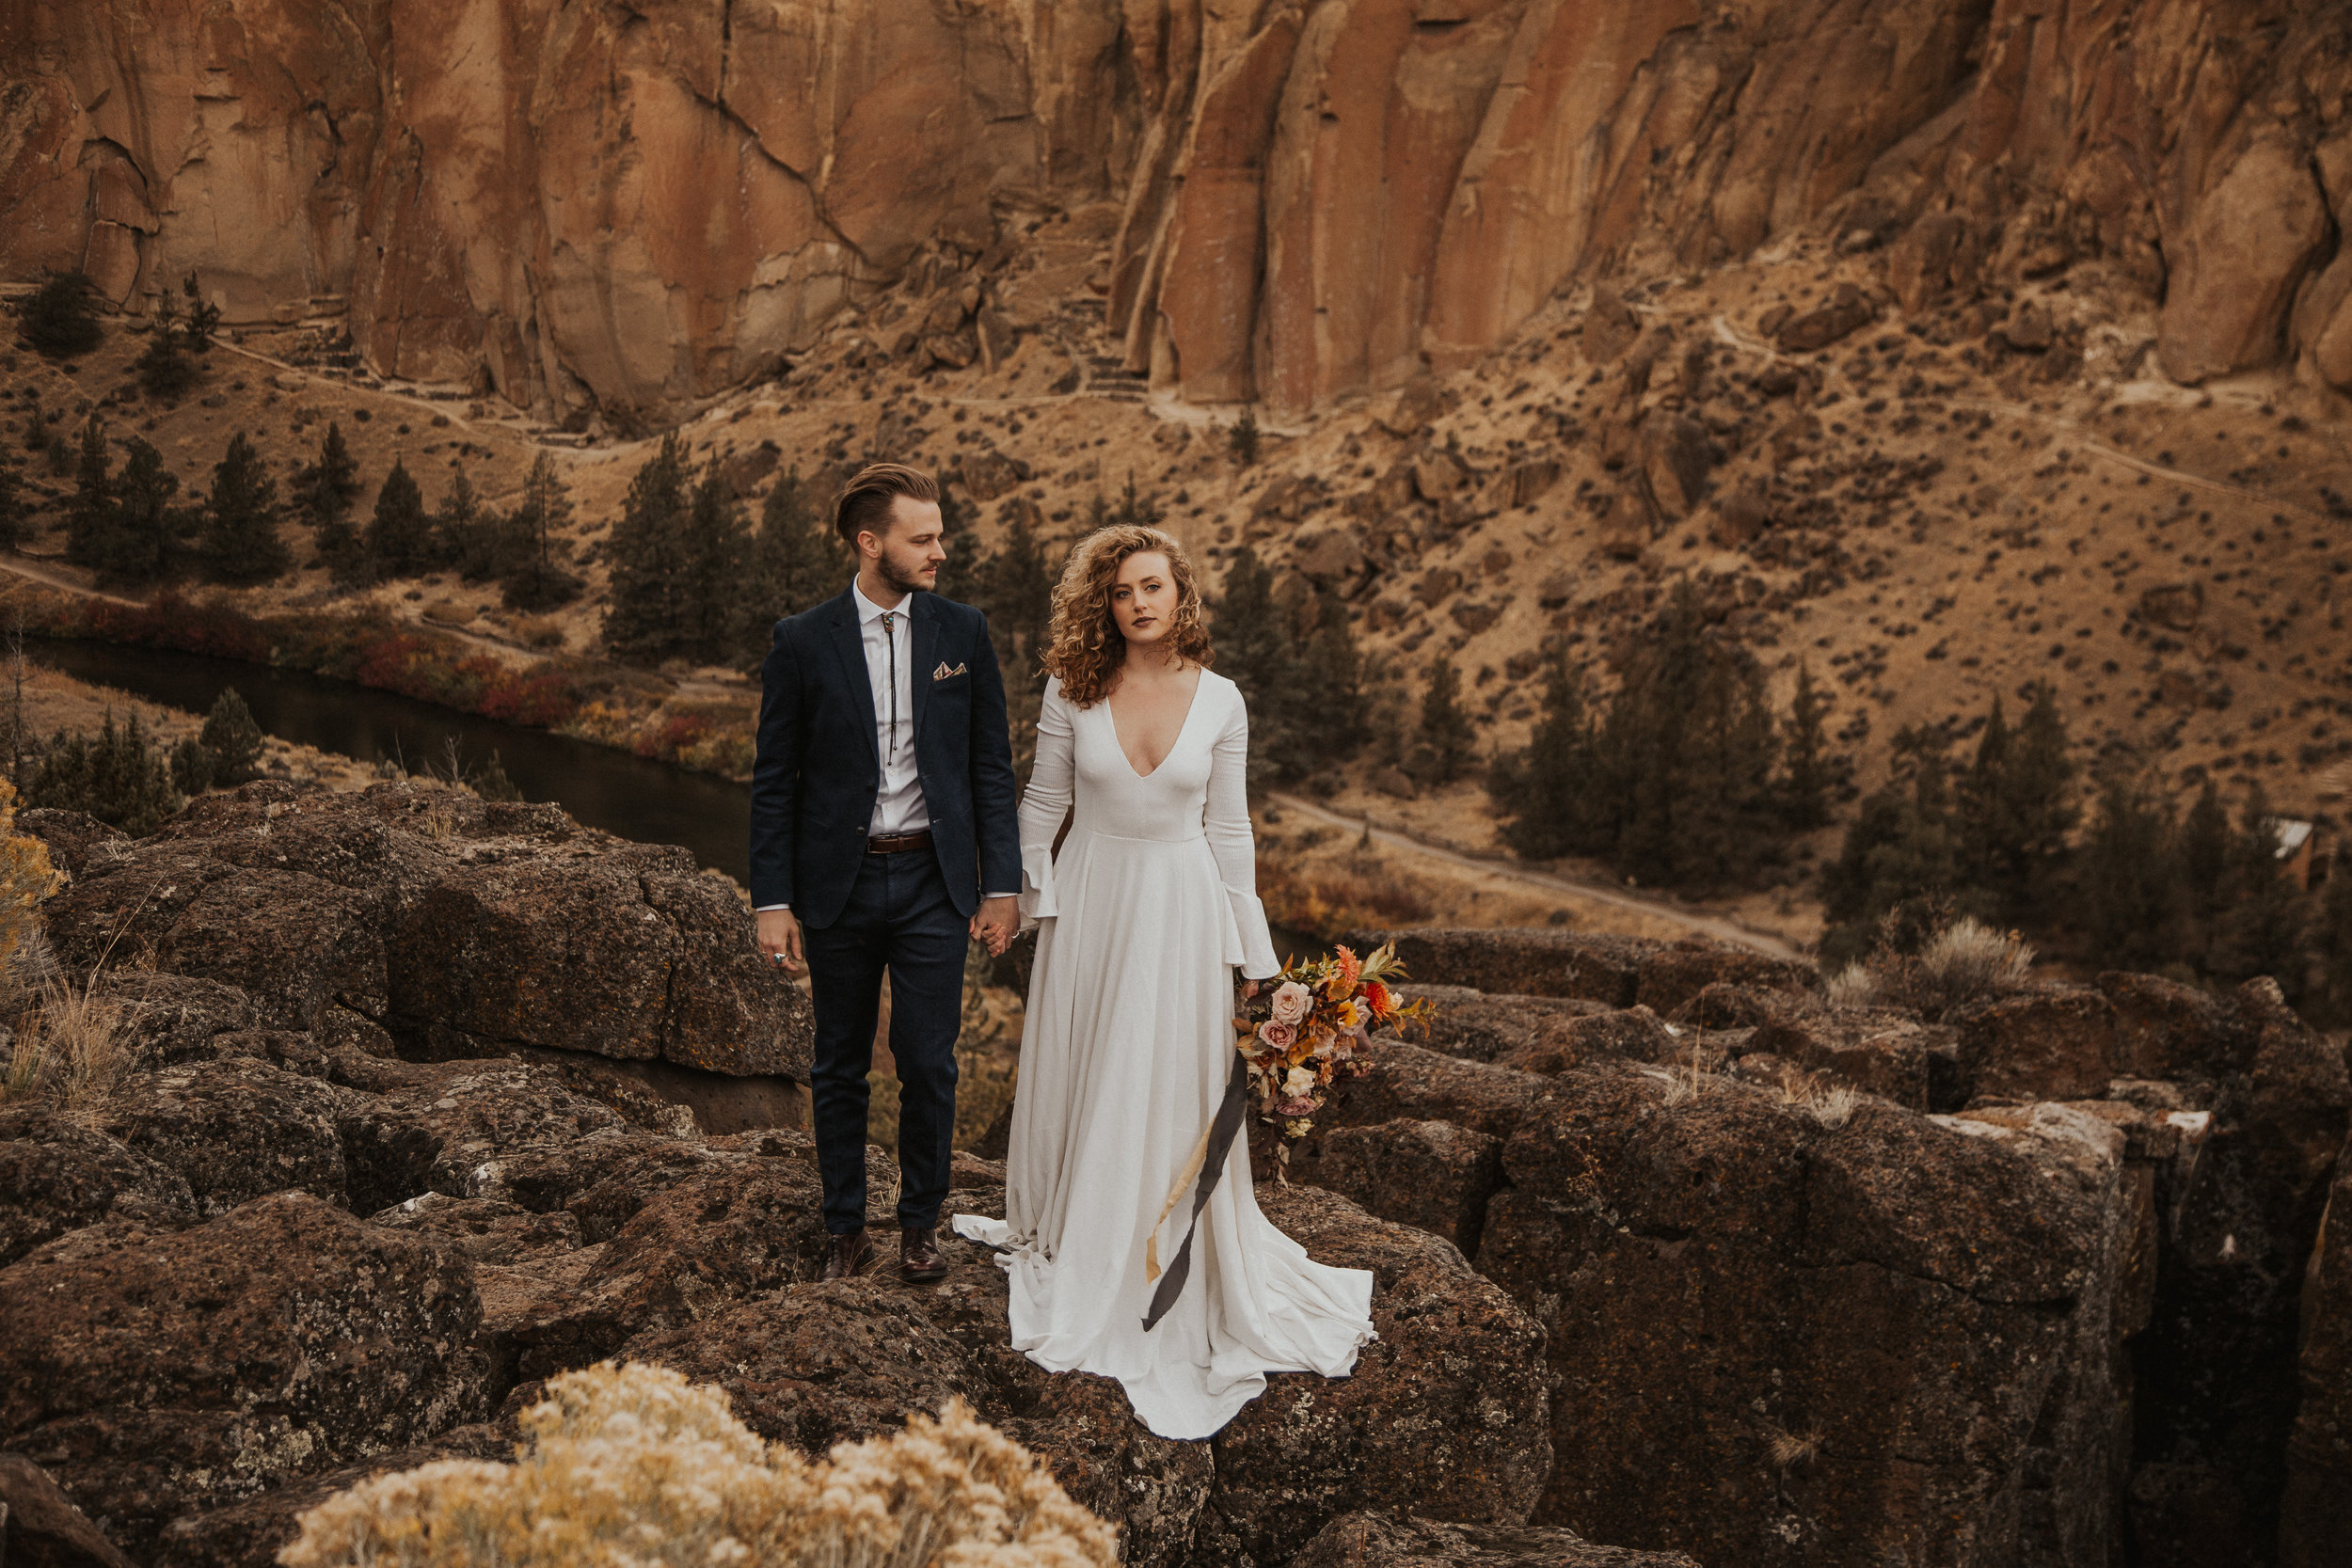 August-muse-images-smith-rock-elopement-oregon-bri-dylan-18.jpg